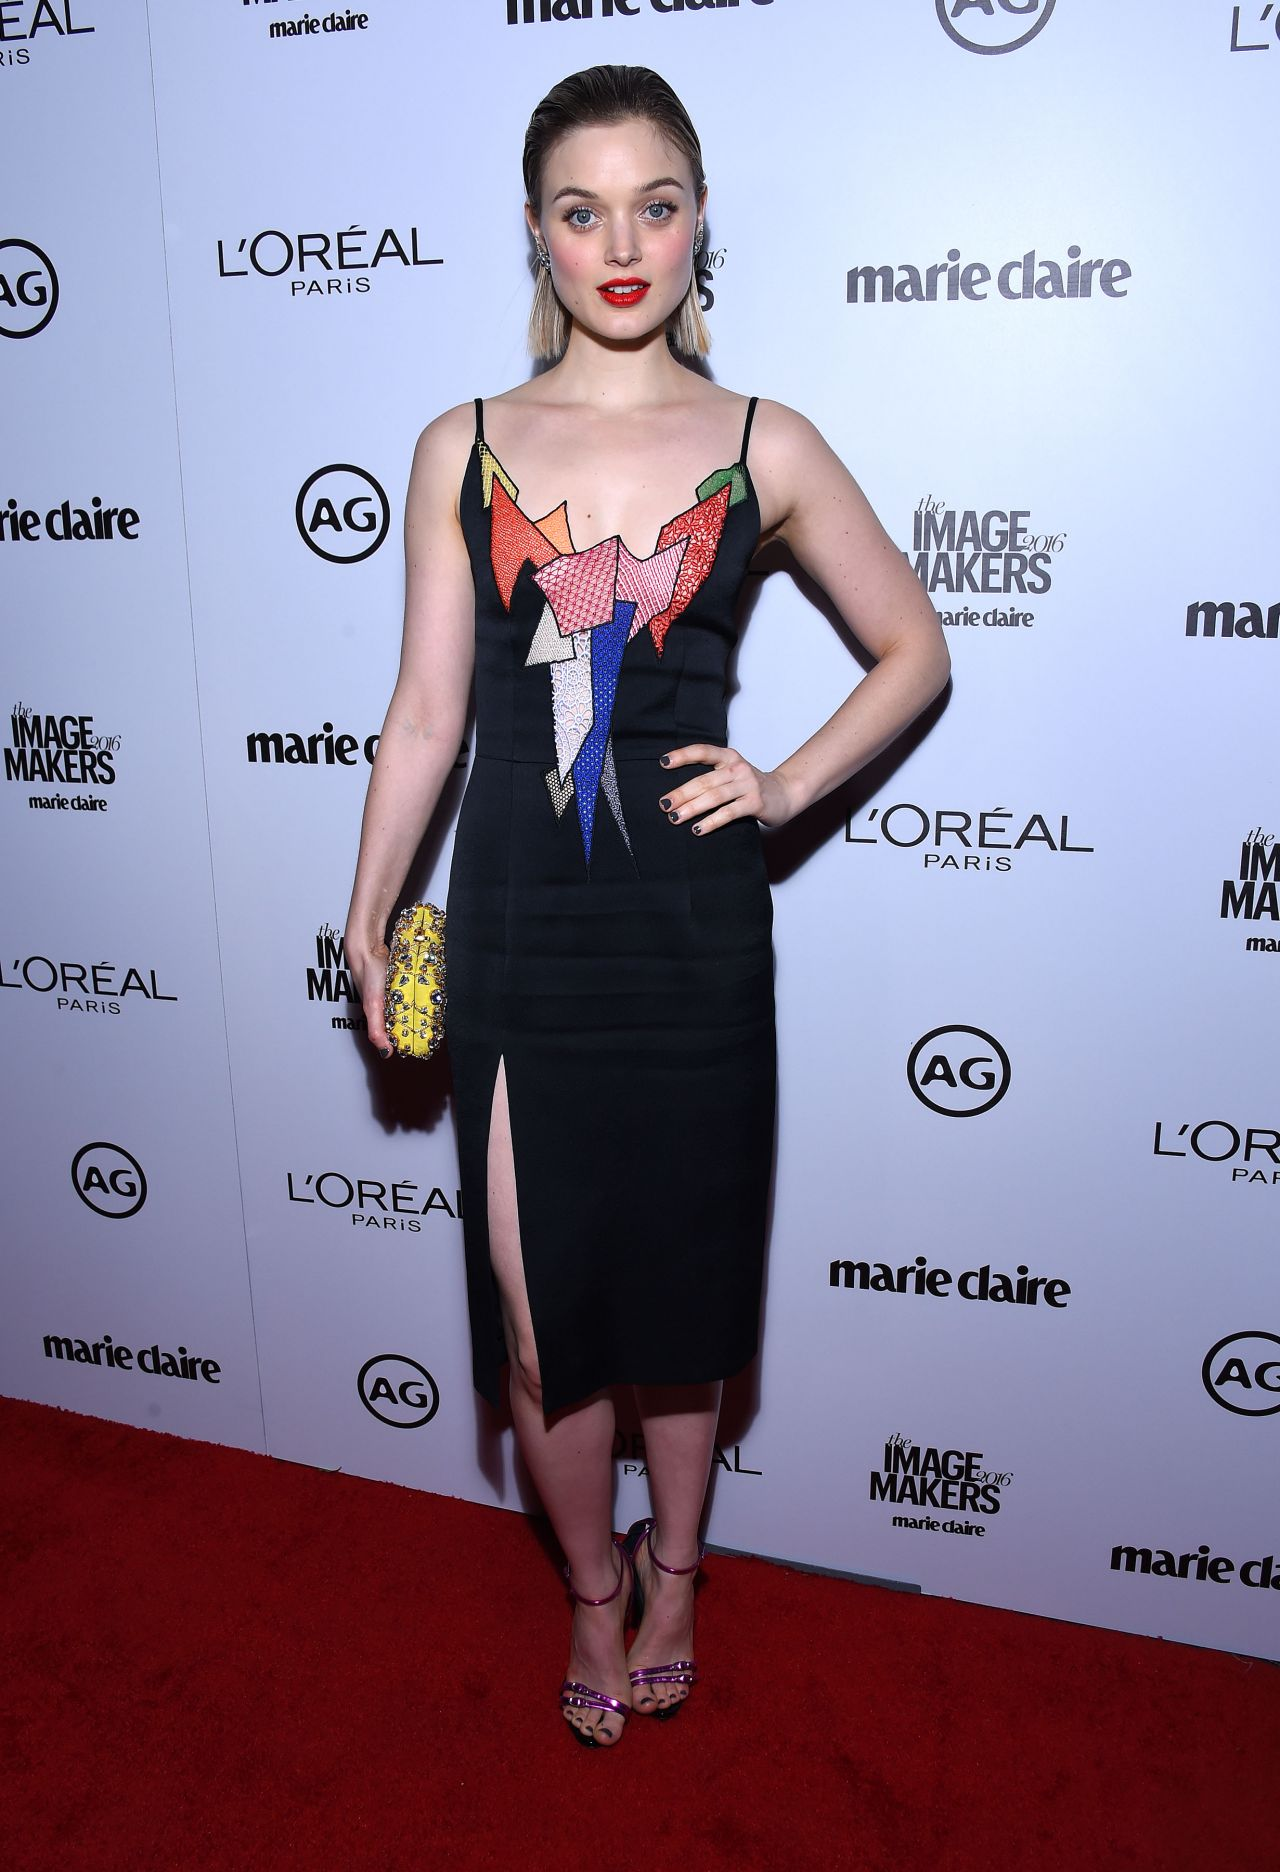 bella-heathcote-2016-inaugural-image-maker-awards-in-los-angeles-1